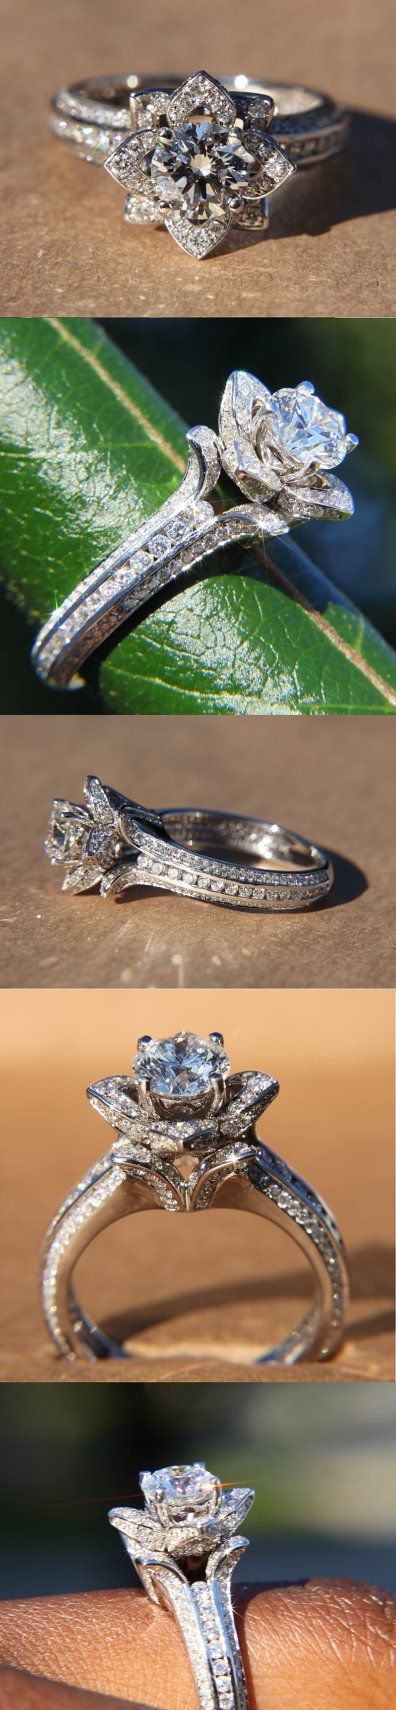 UNIQUE Flower Rose Diamond Engagement or Right Hand Semi mount Ring - 2.20 carat - 14K white gold - wedding - brides